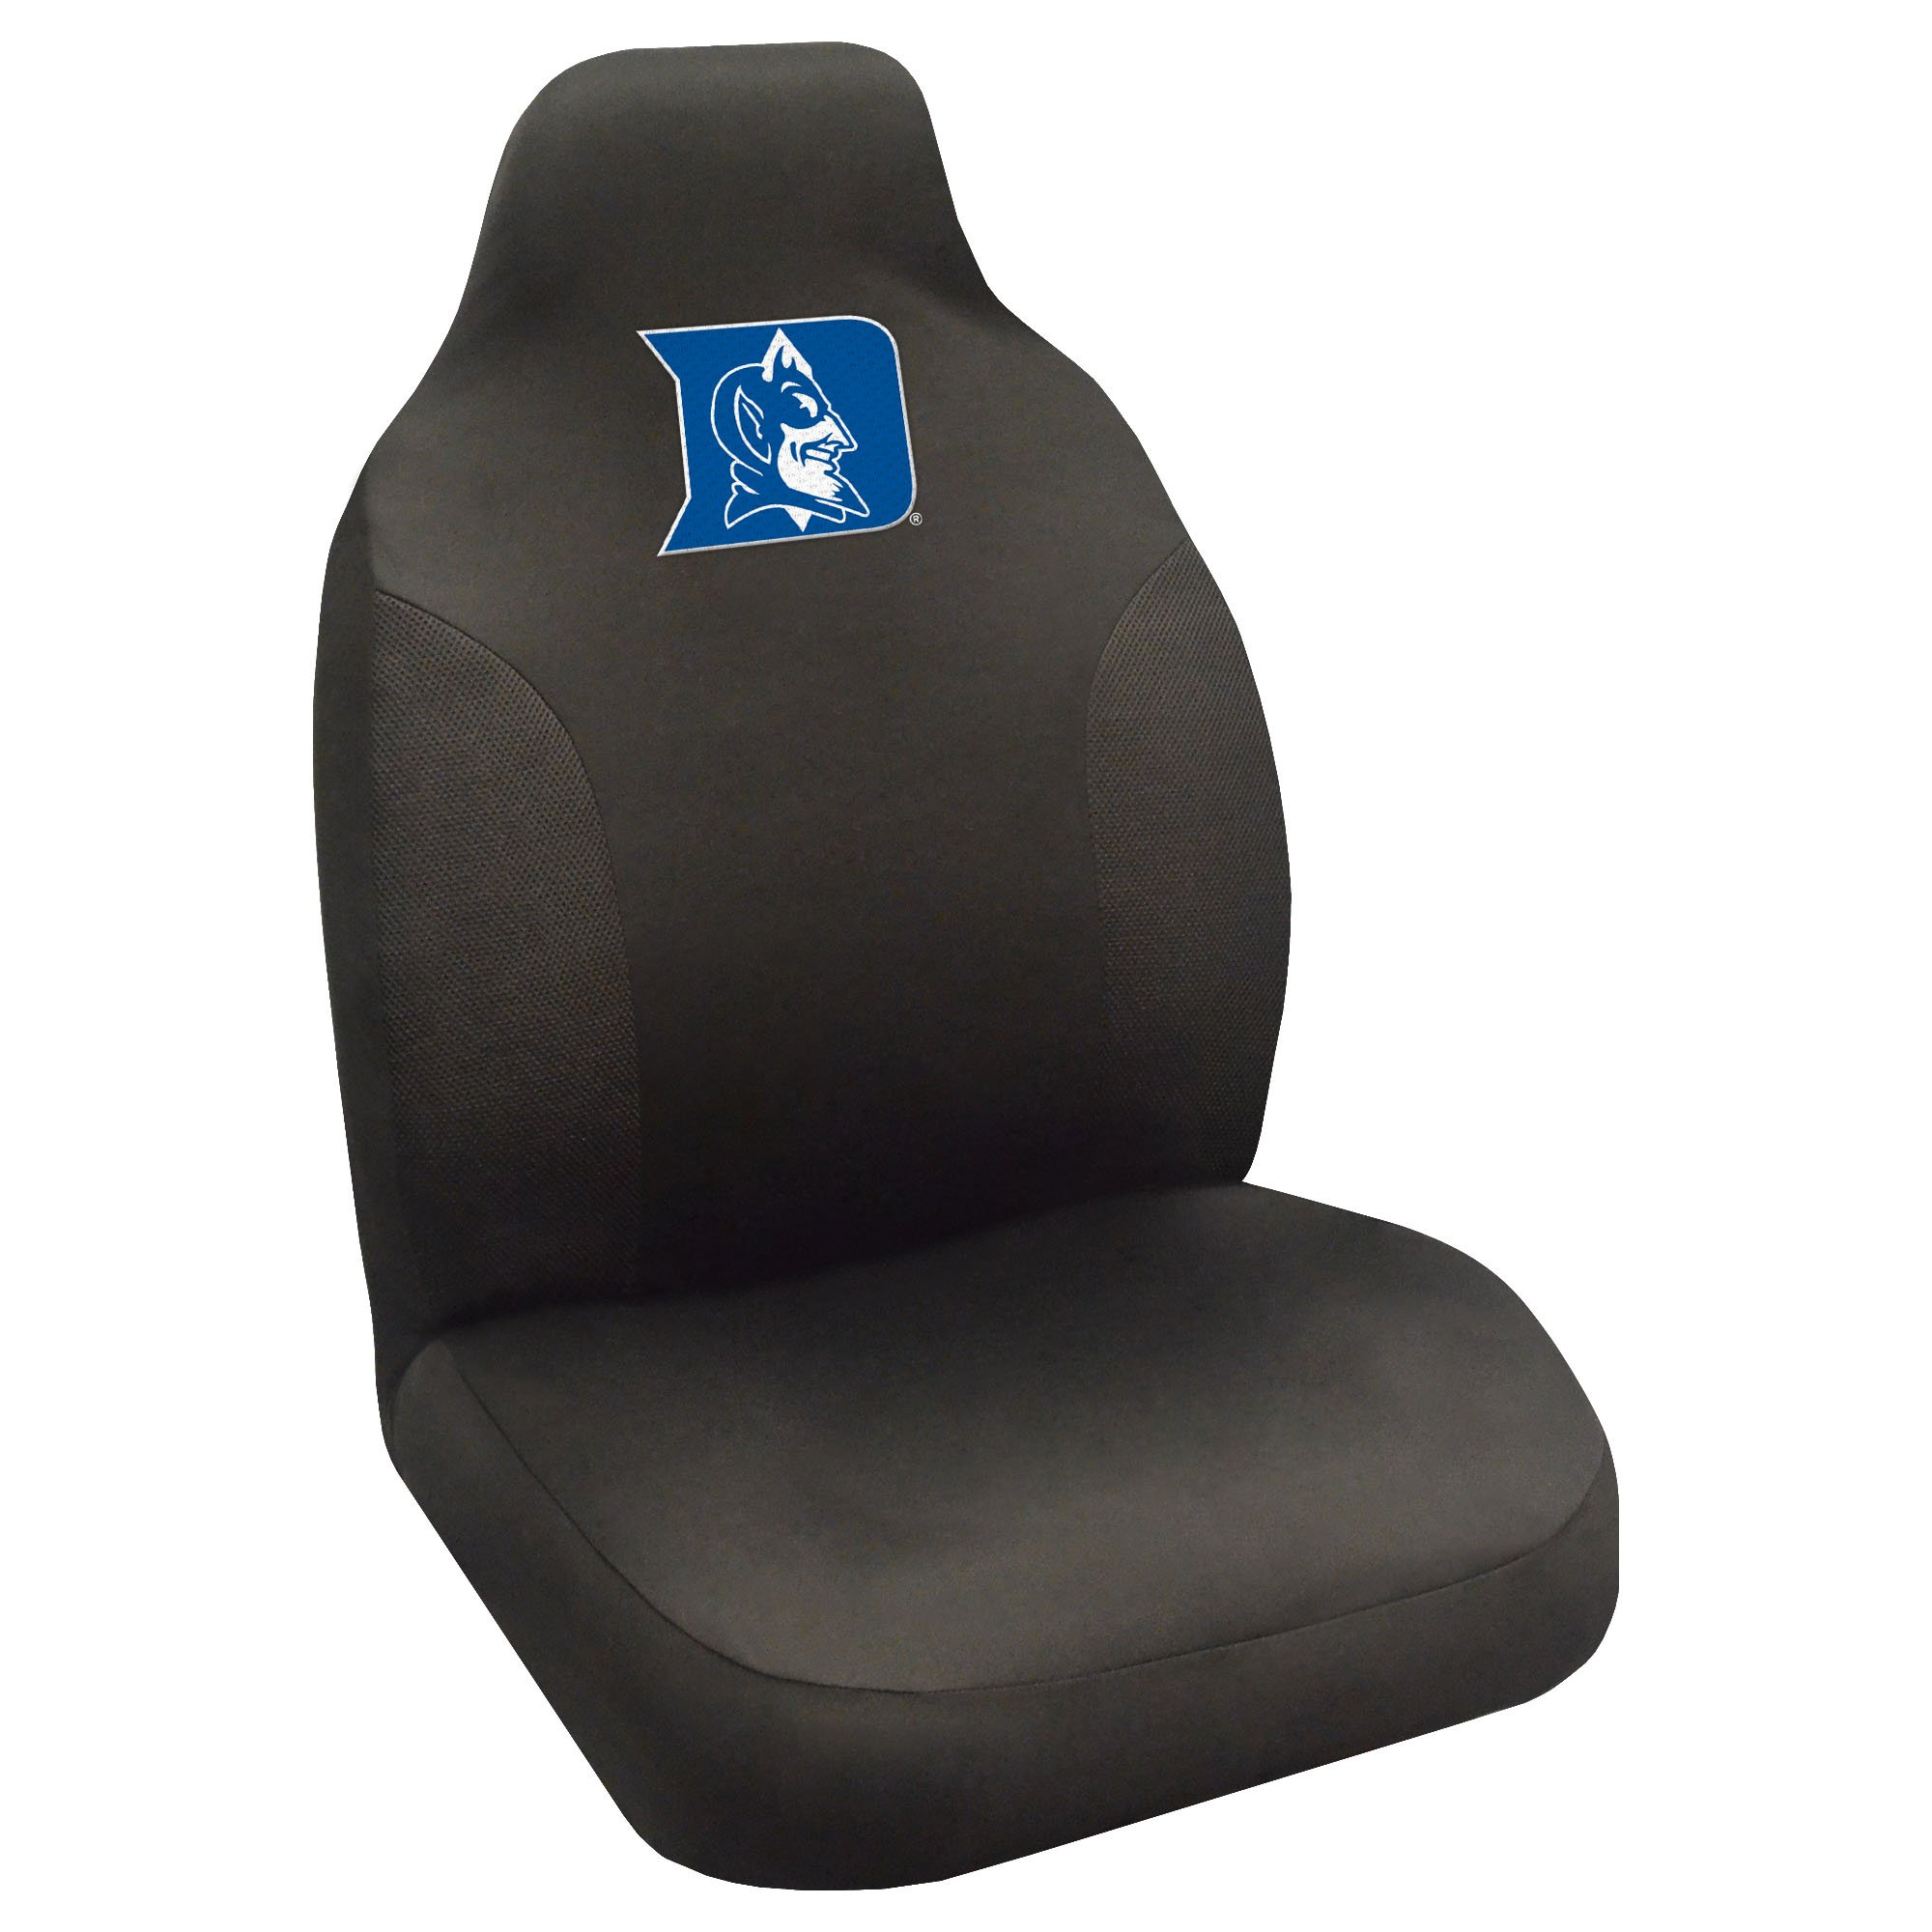 FANMATS NCAA Duke University Blue Devils Polyester Seat Cover by Fanmats